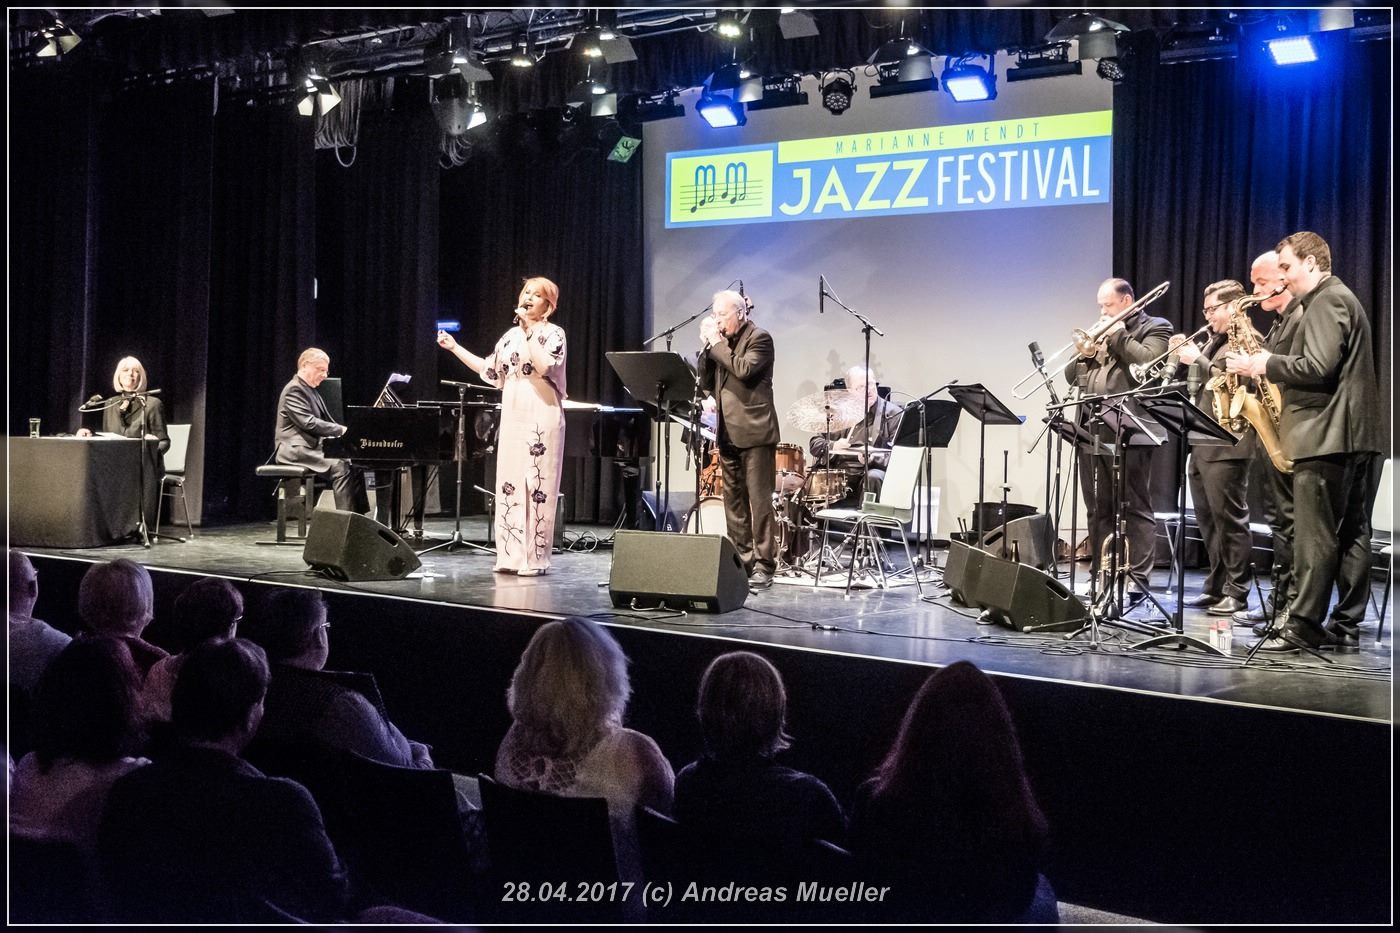 MM Jazzfestival Foto Andreas Müller